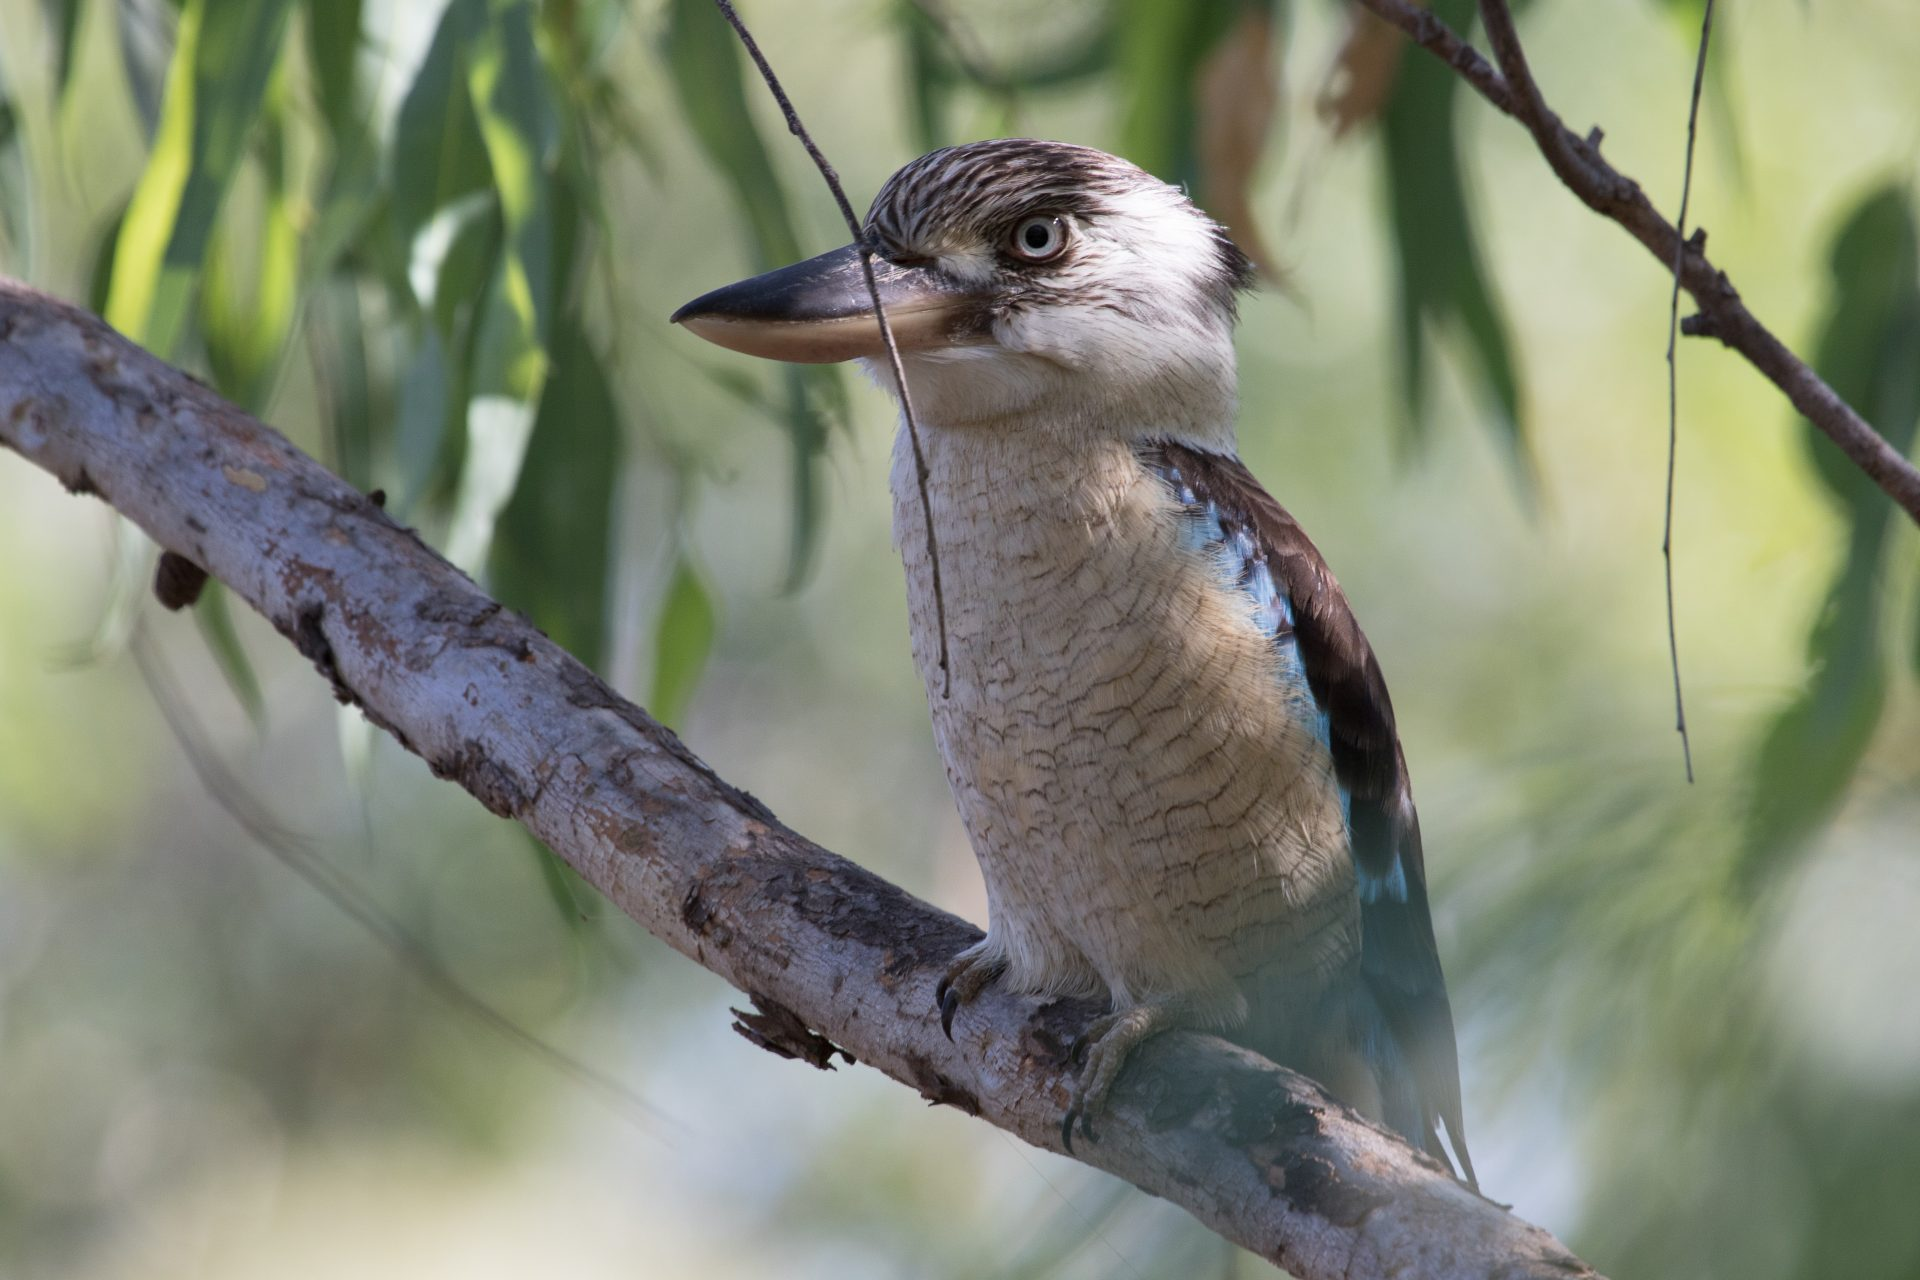 Blue-Winged Kookaburra, Kakadu National Park, Northern Territory Australia, Apr. 2016